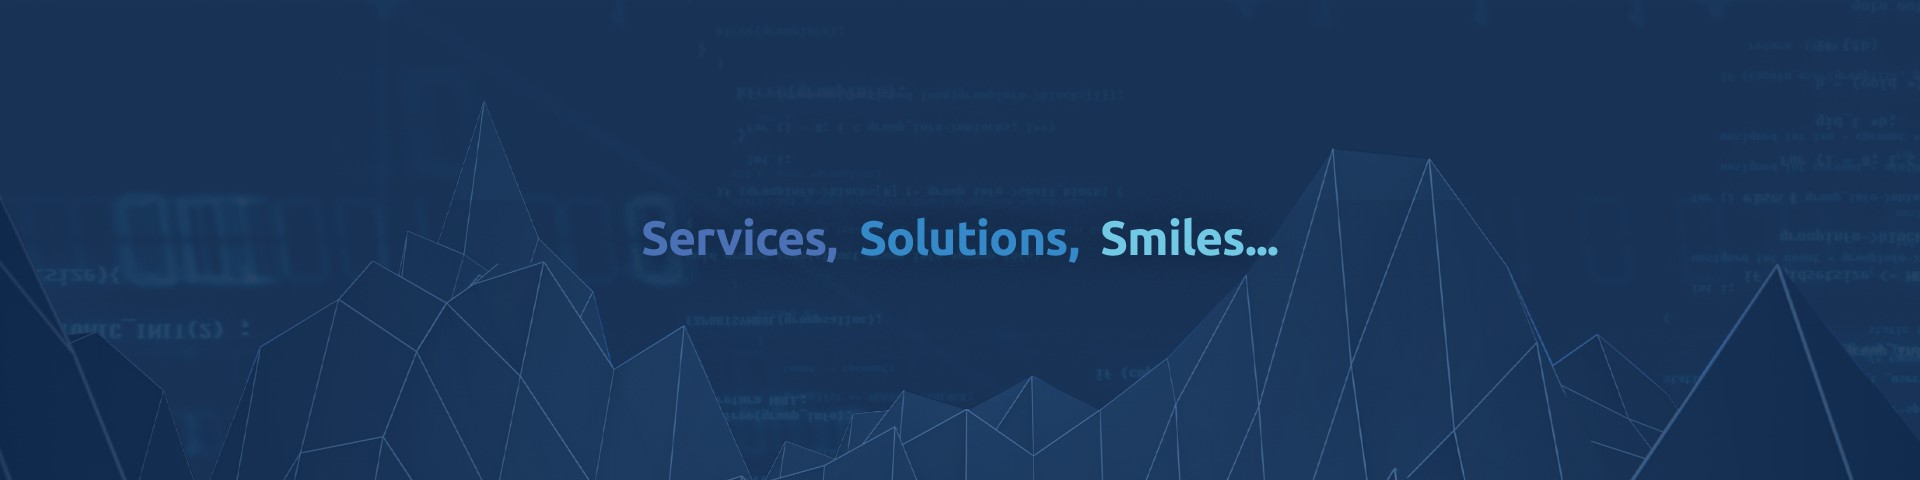 Services, Solutions, Smiles...